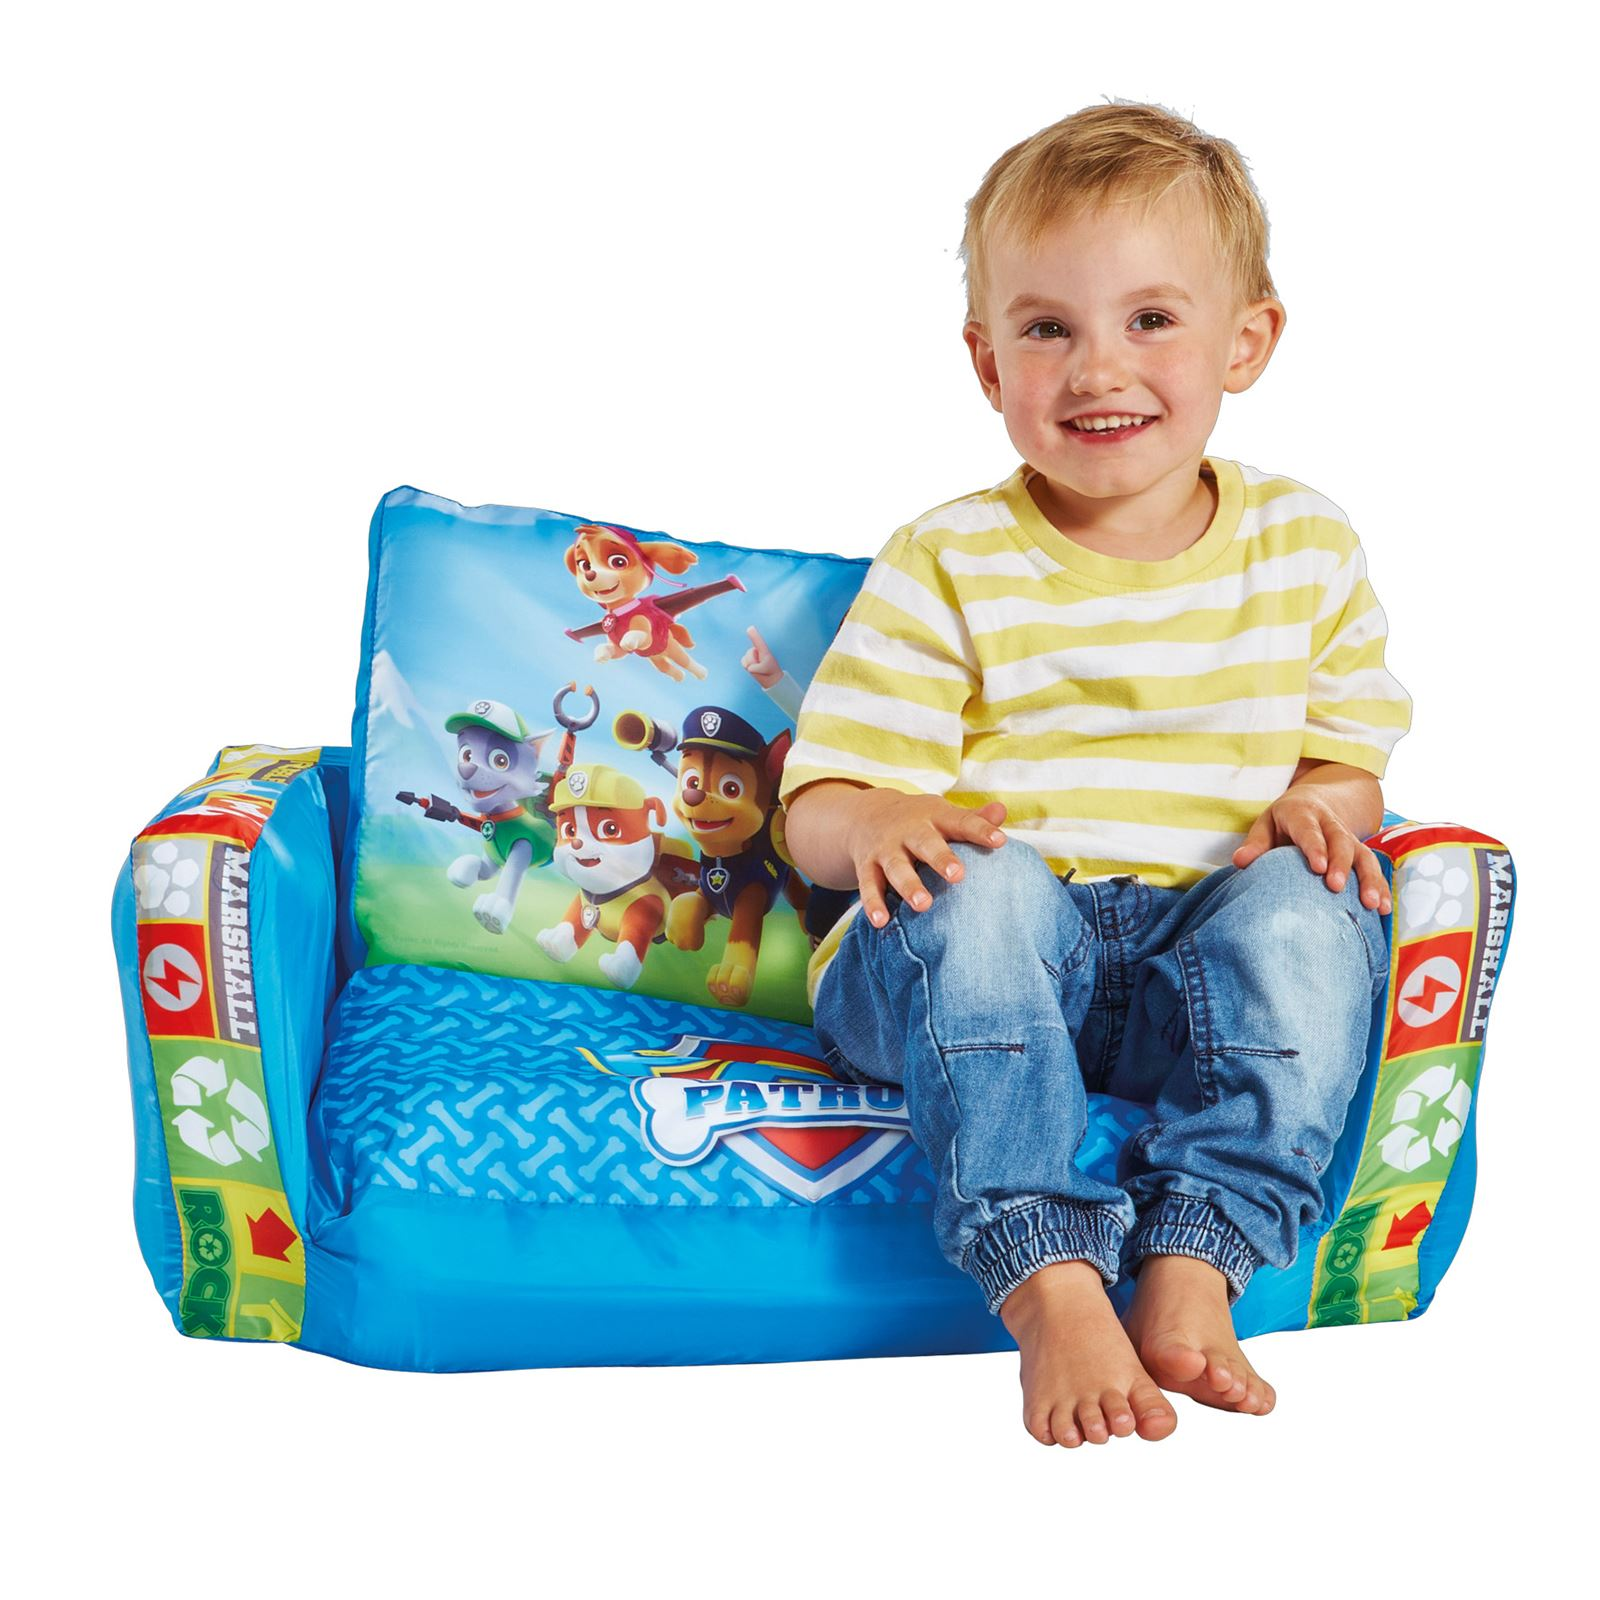 Flip Out Prices Paw Patrol Blue Kids Flip Out Sofa Inflatable Extend Seat